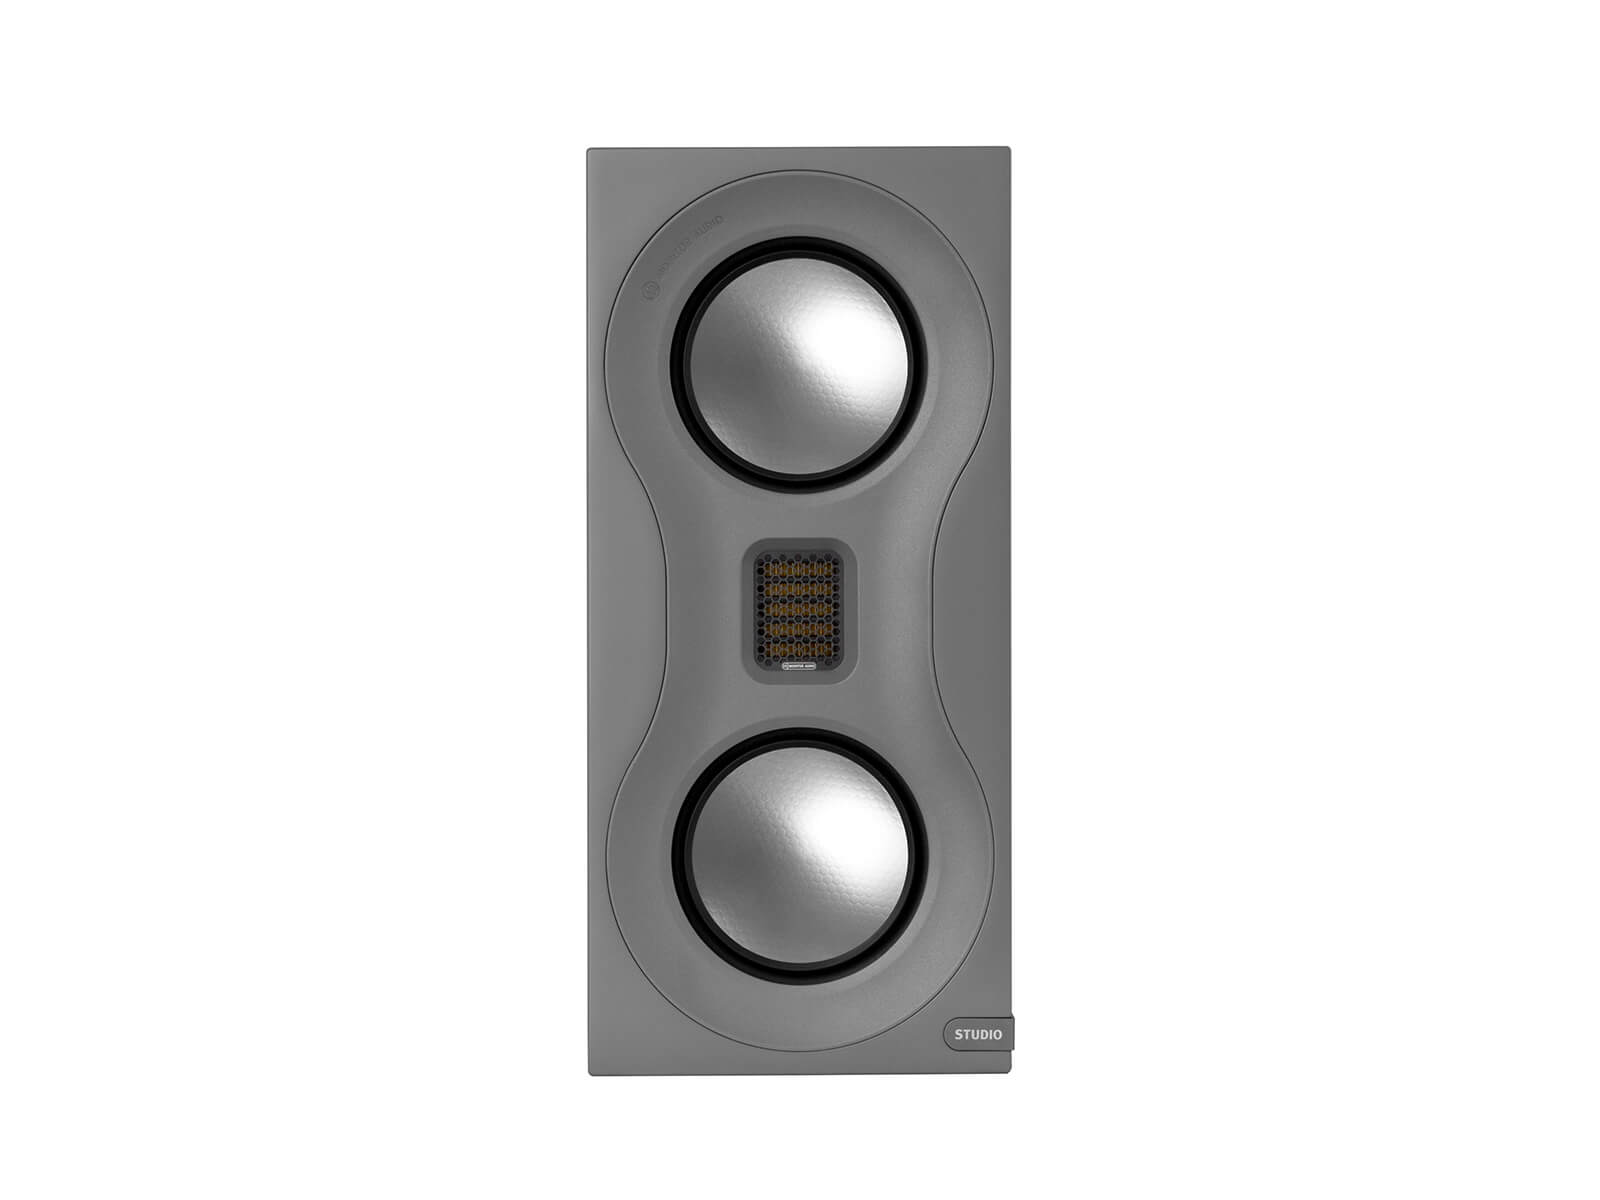 Studio, bookshelf speakers, front-on, with a satin grey finish.